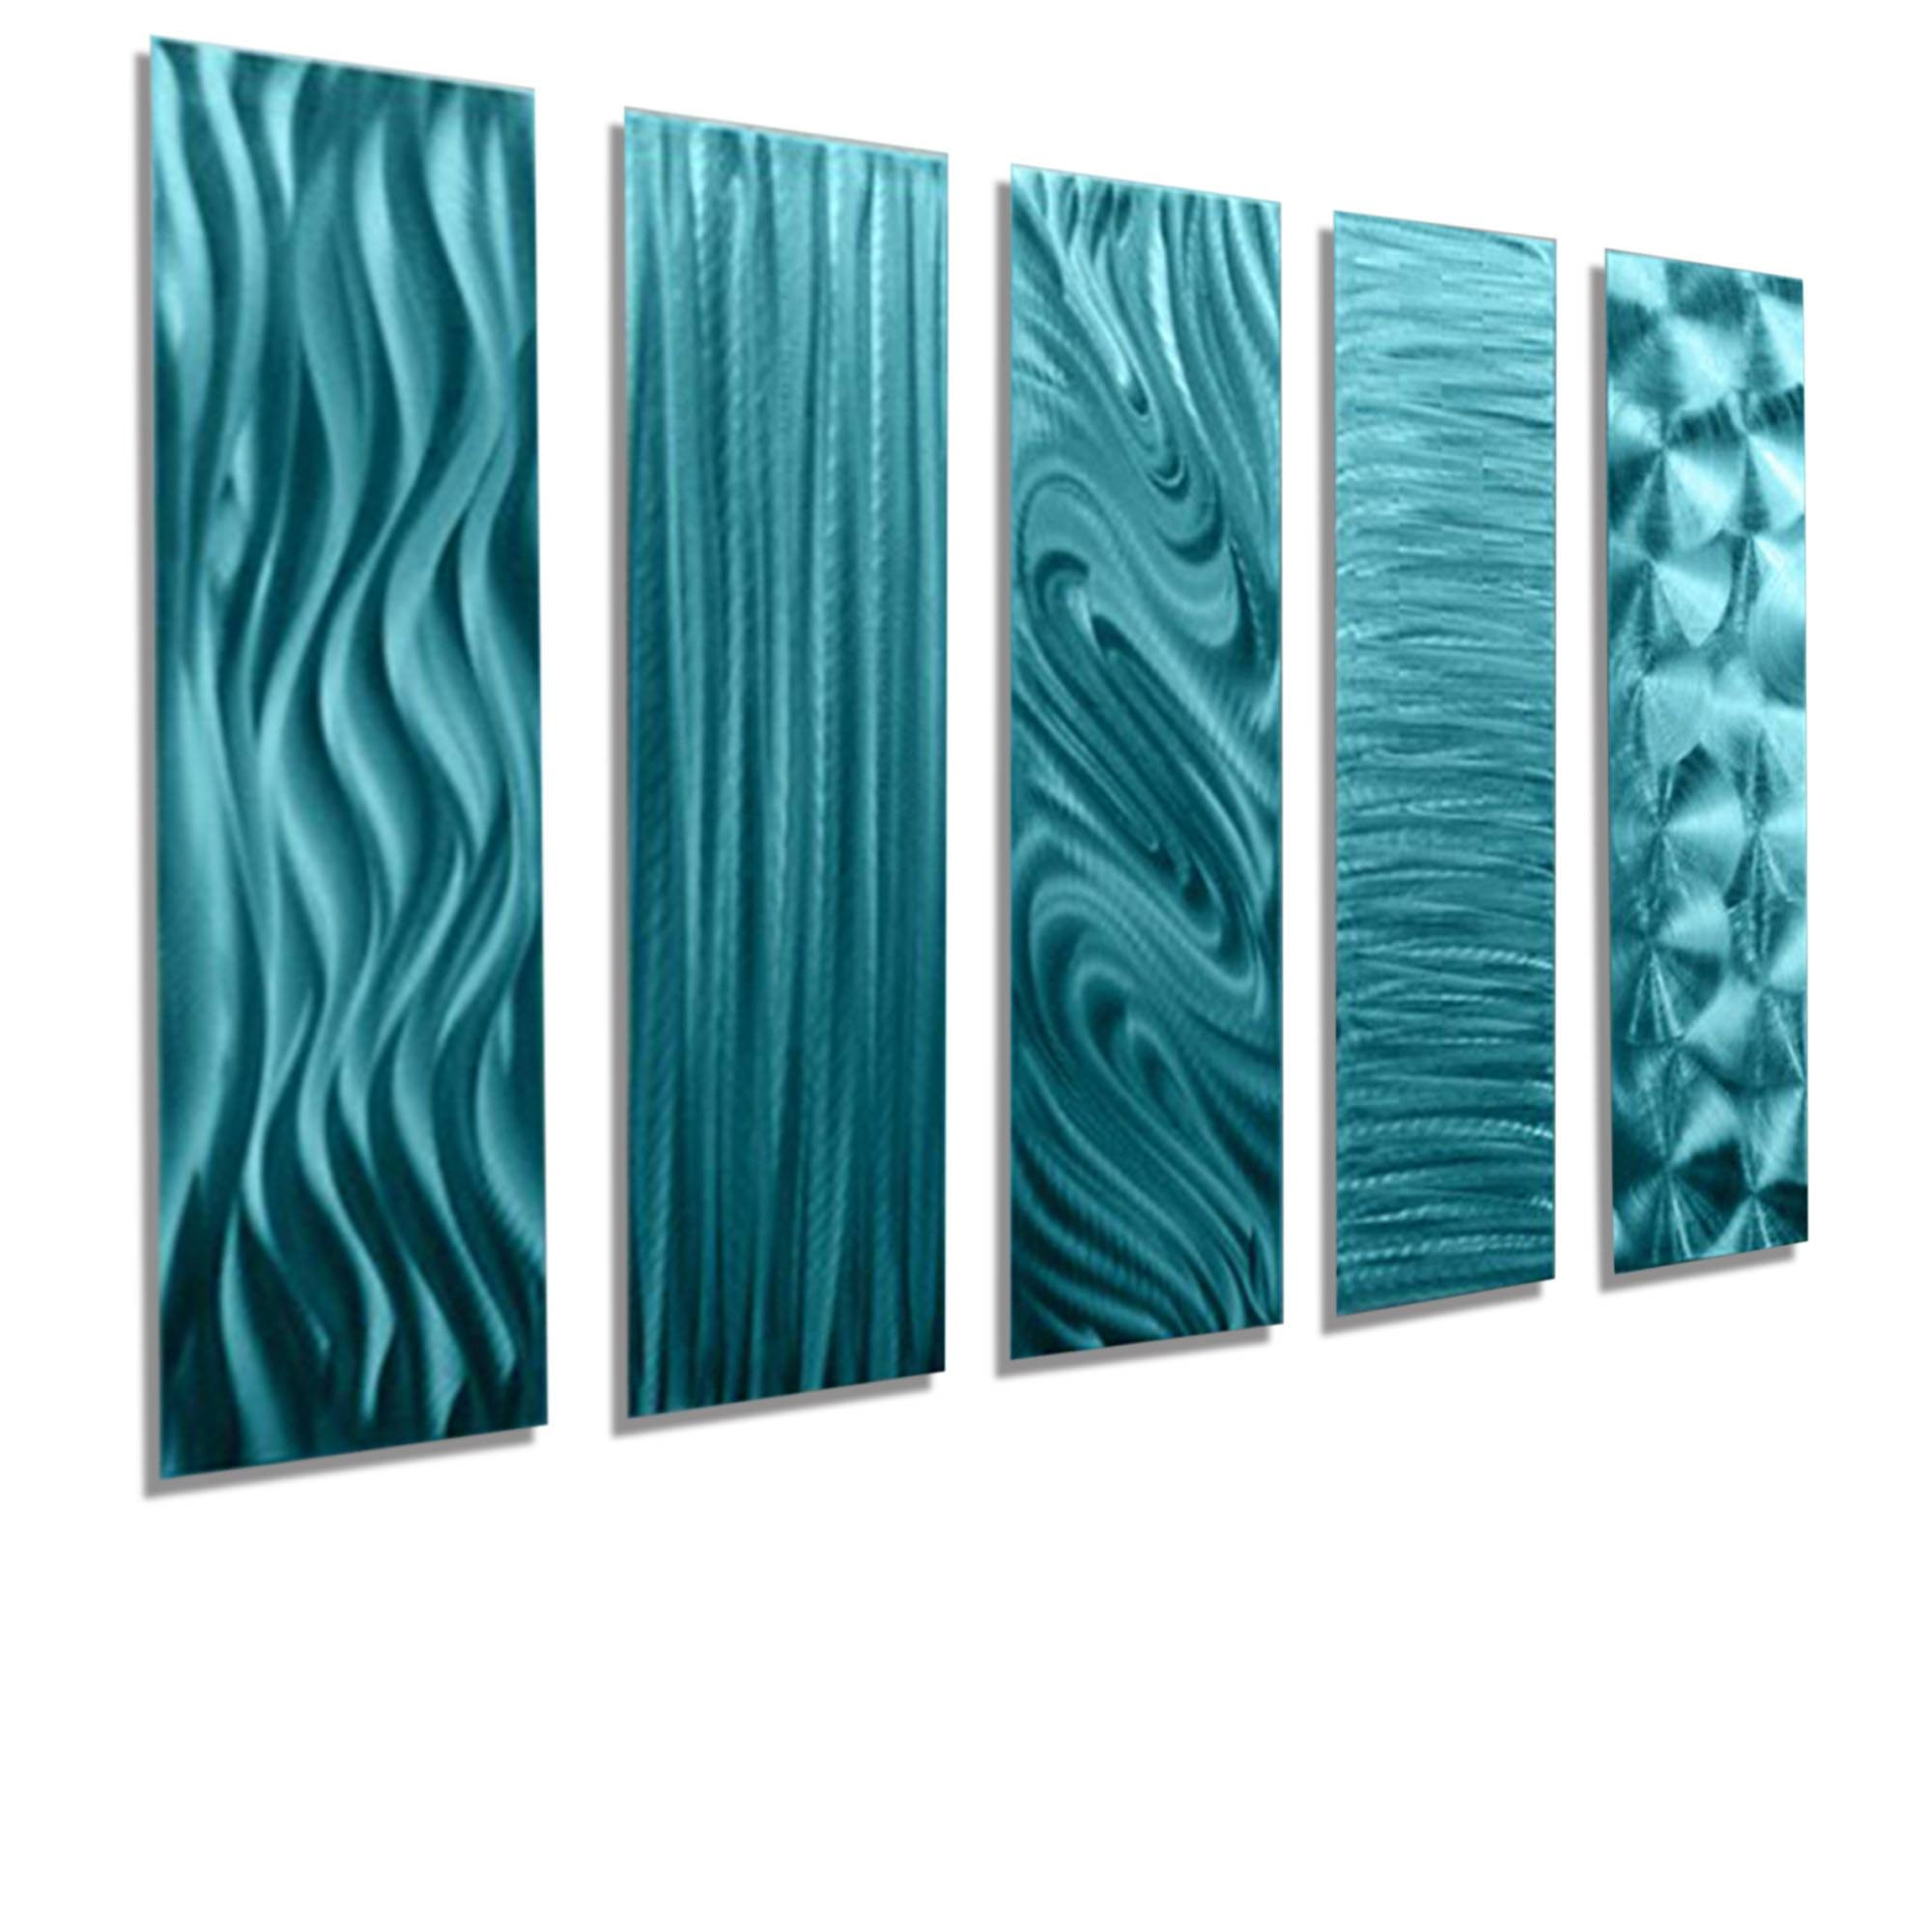 "5 Easy Pieces Aqua – Set Of Five 24"" X 6"" Metal Wall Art Accents Within Most Recently Released Teal Metal Wall Art (View 1 of 20)"